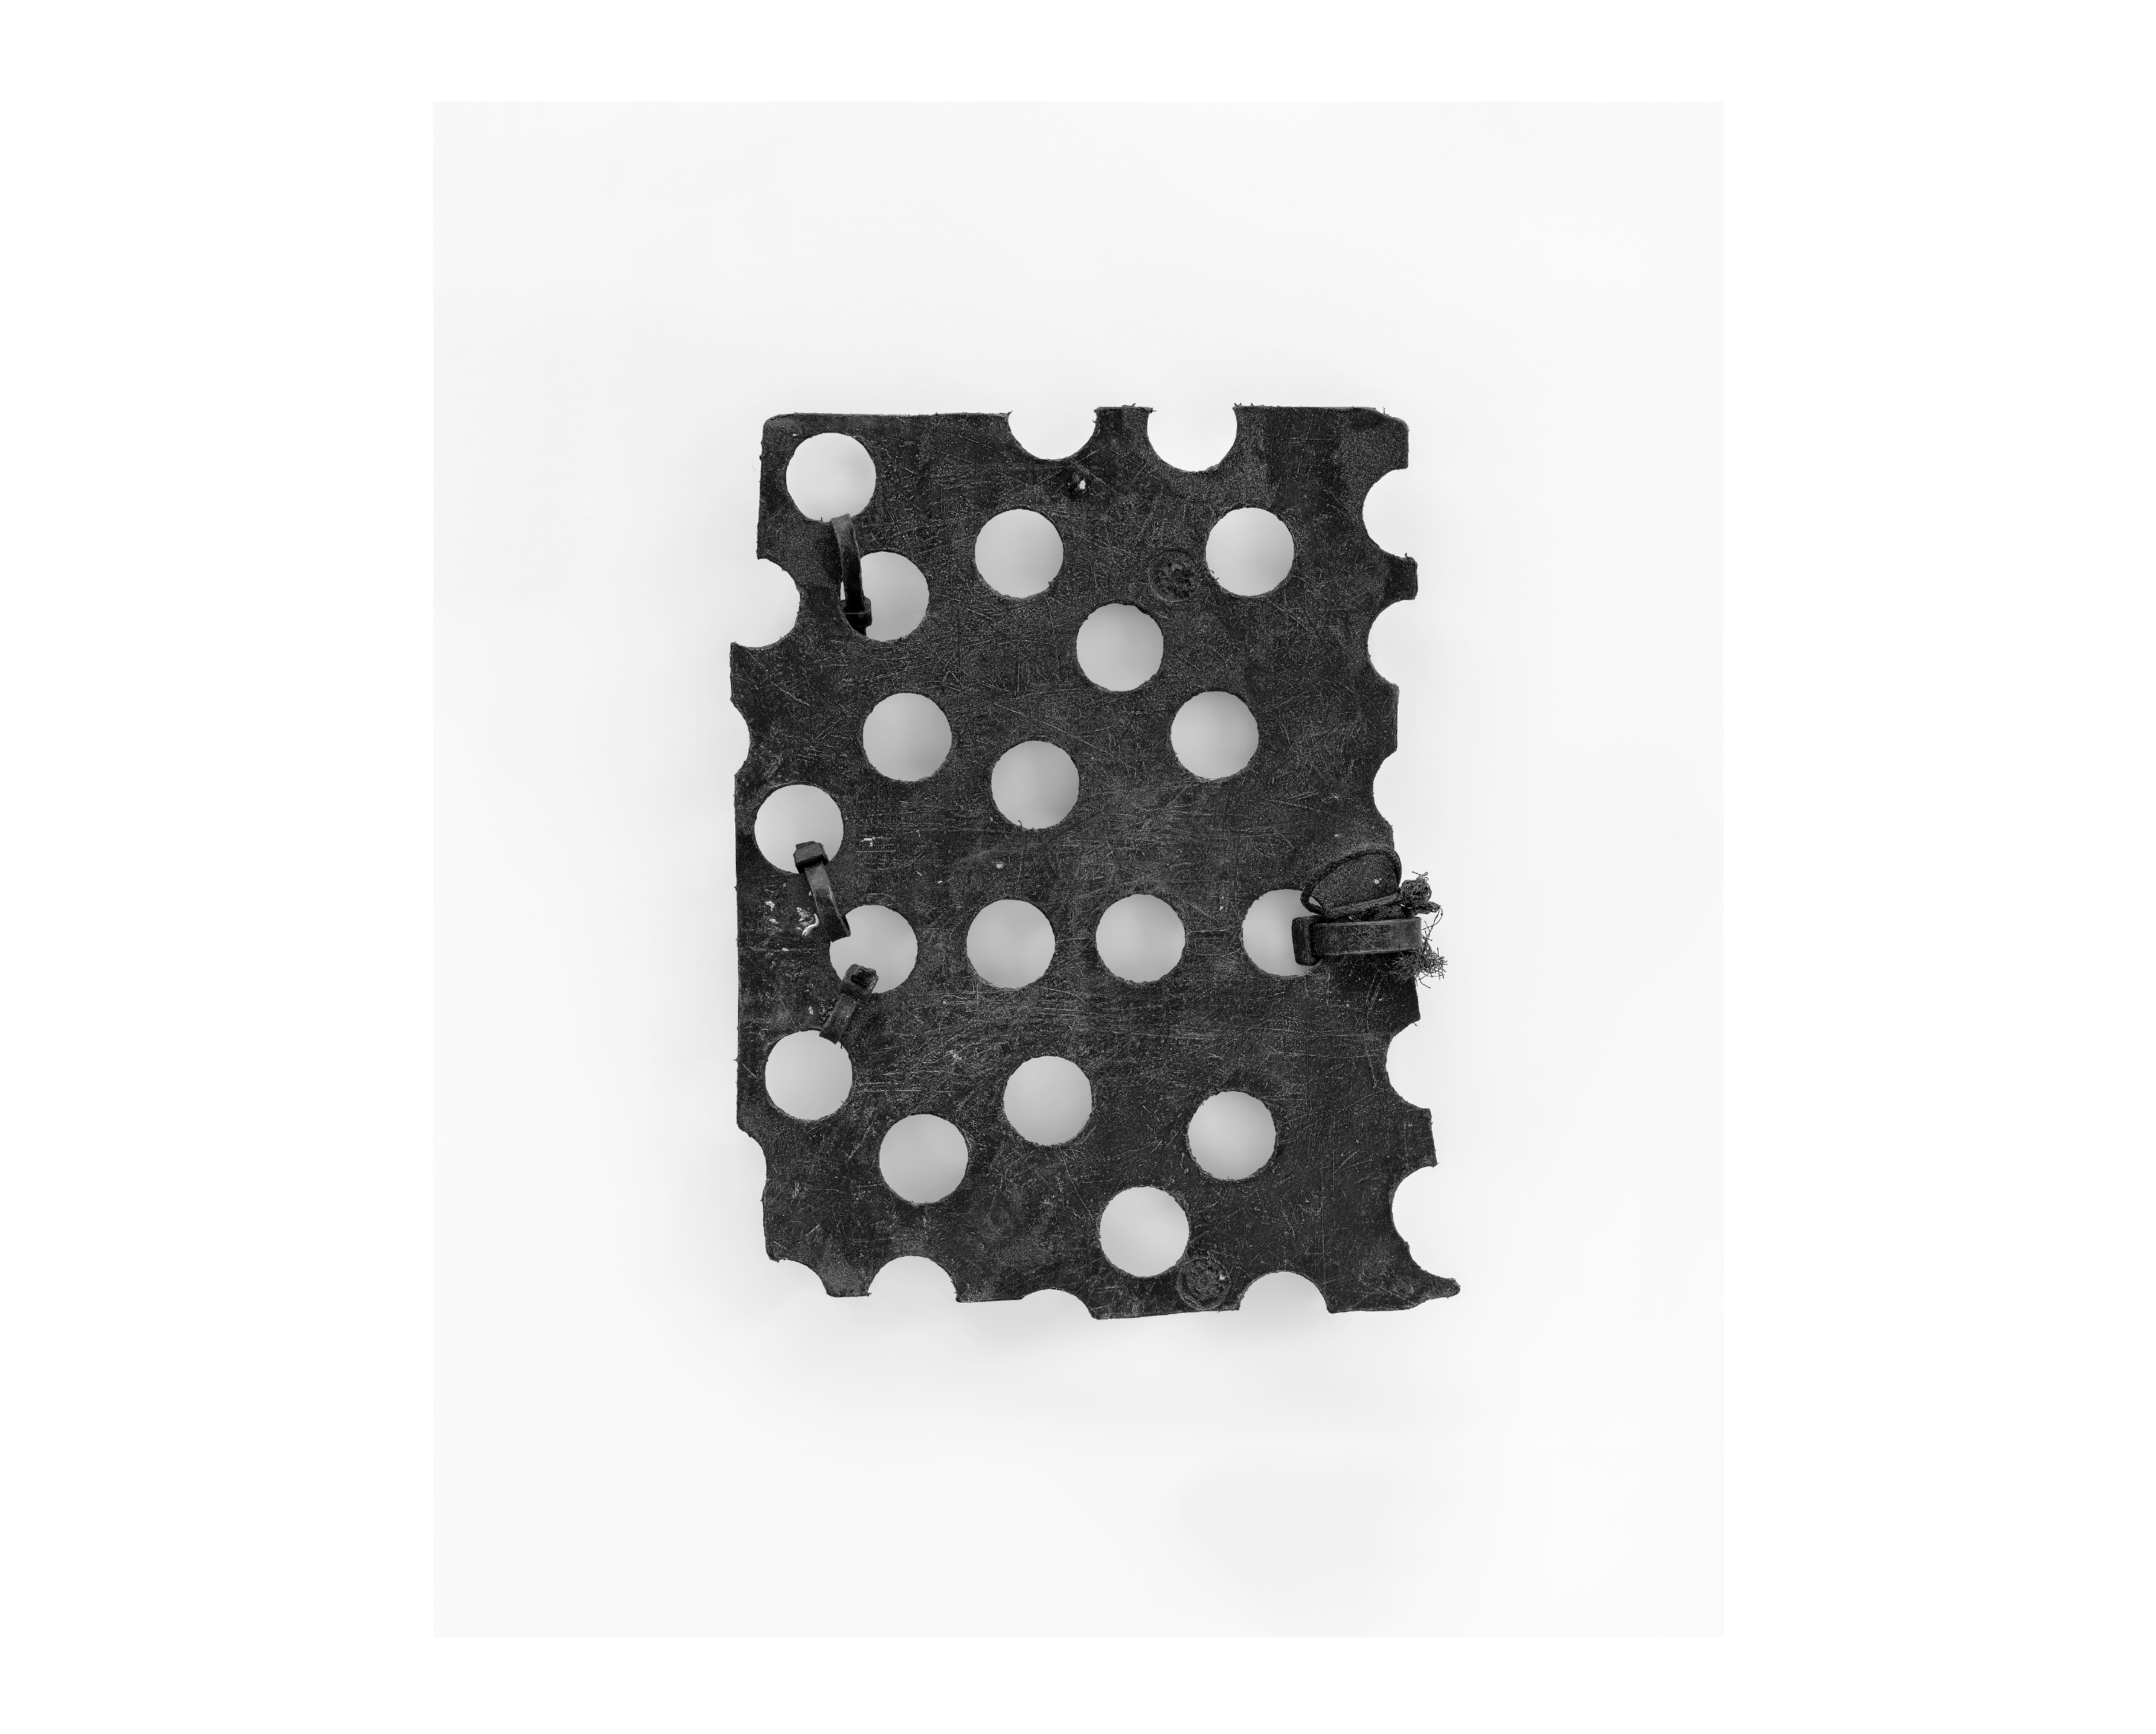 Photograph of a black piece of plastic with holes punched in it - the suspended side of a fishing 'keep box'